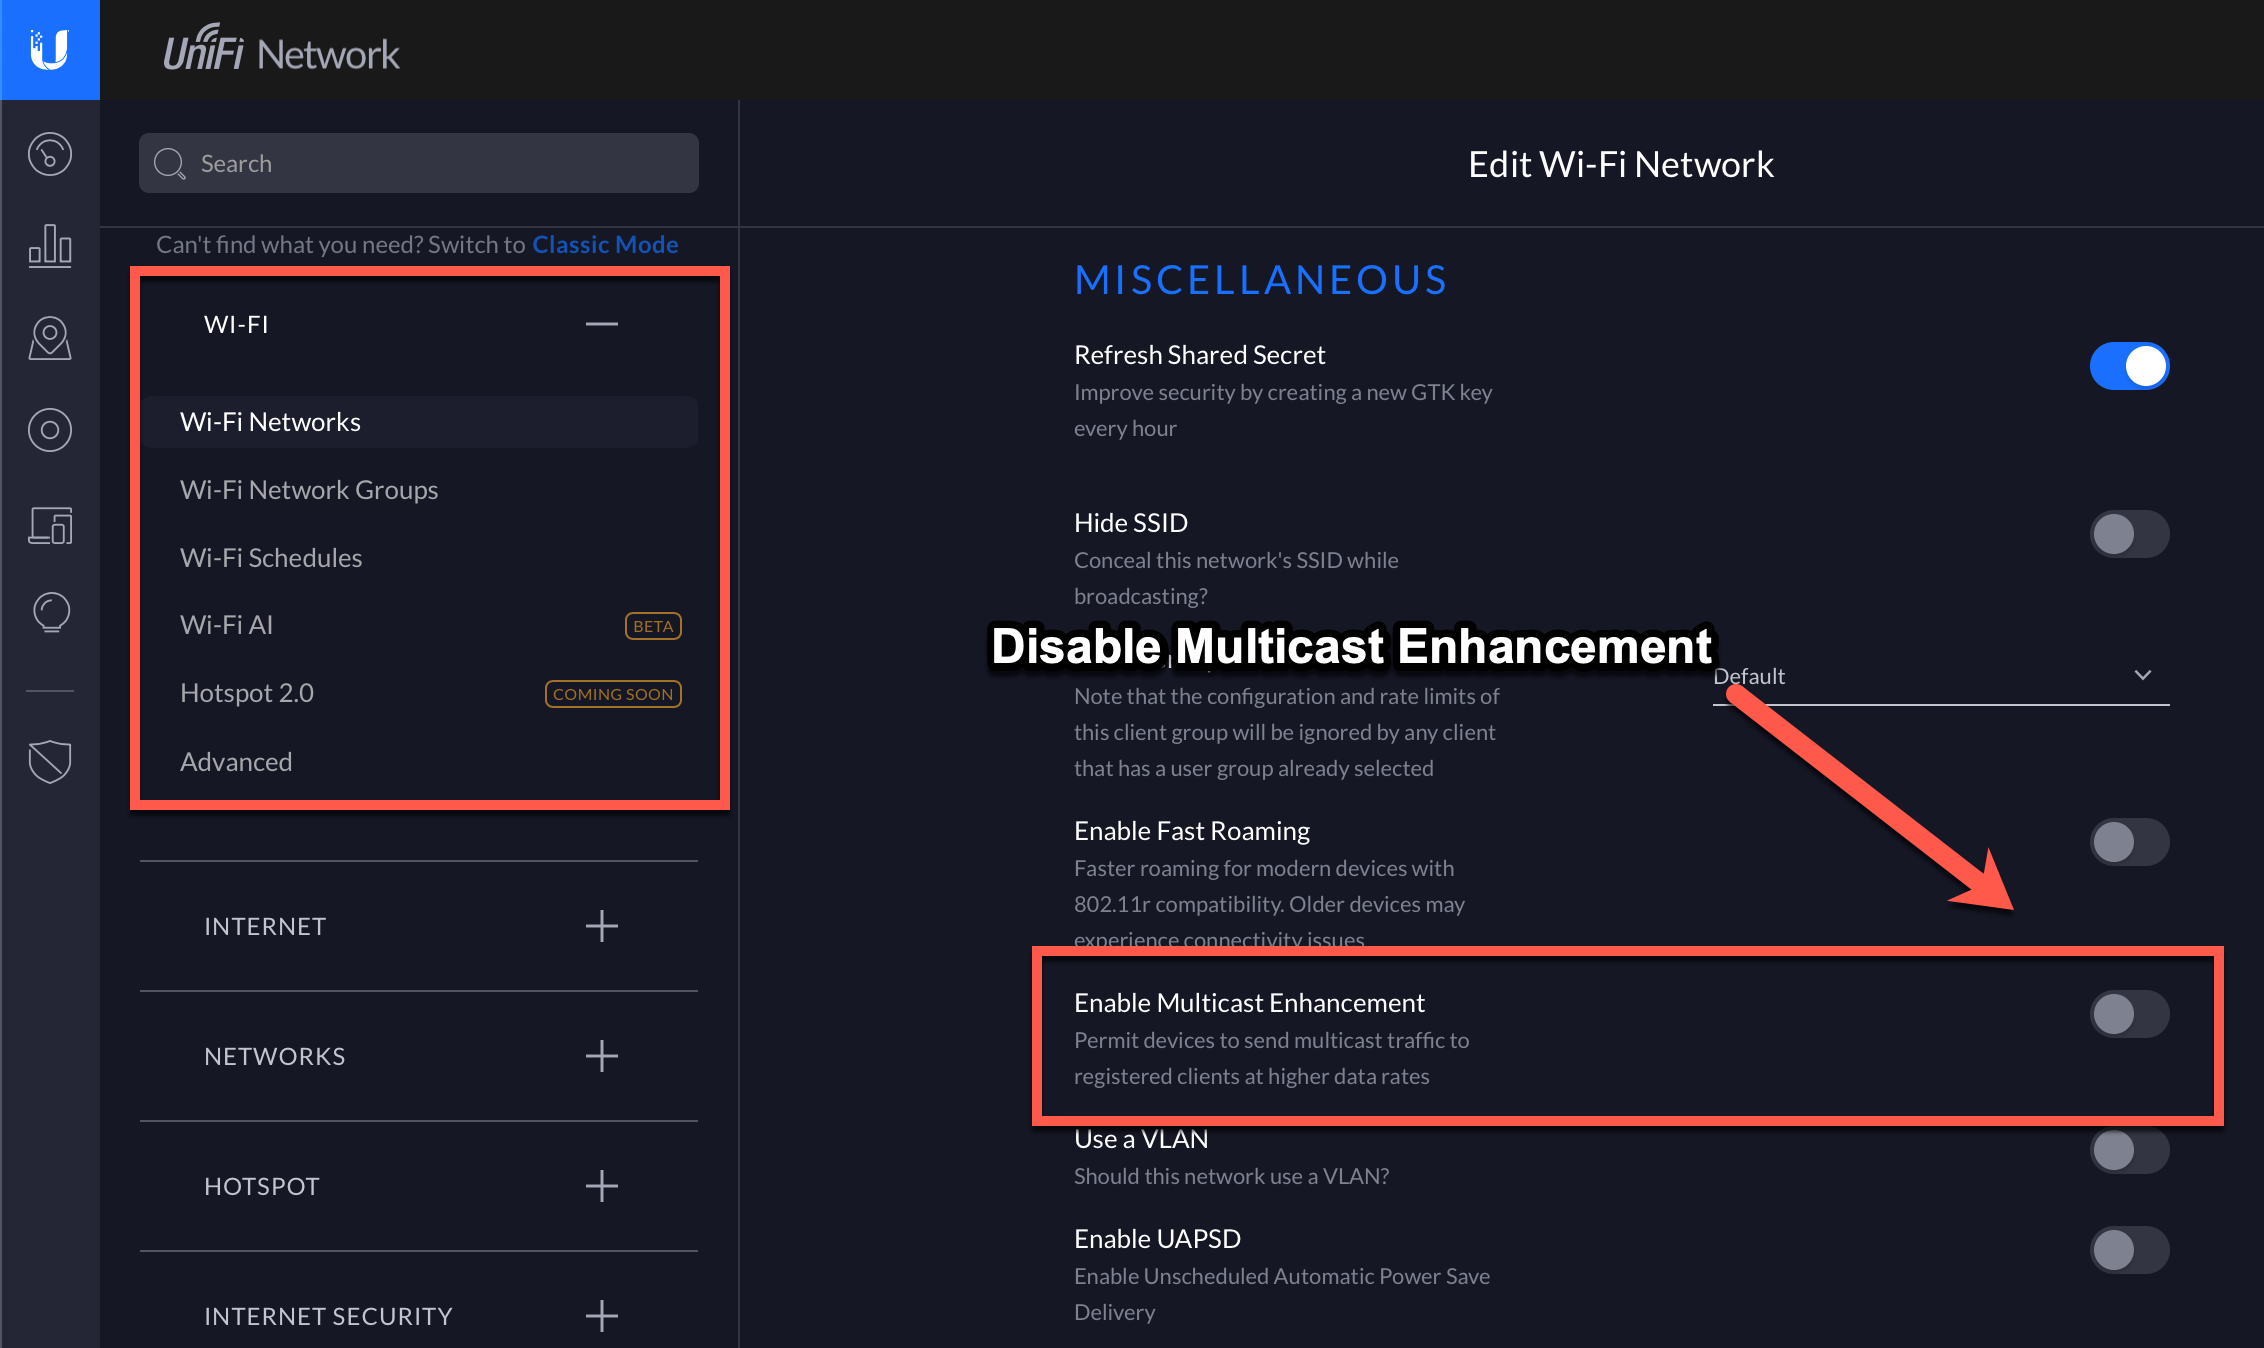 Disable Multicast Enhancement